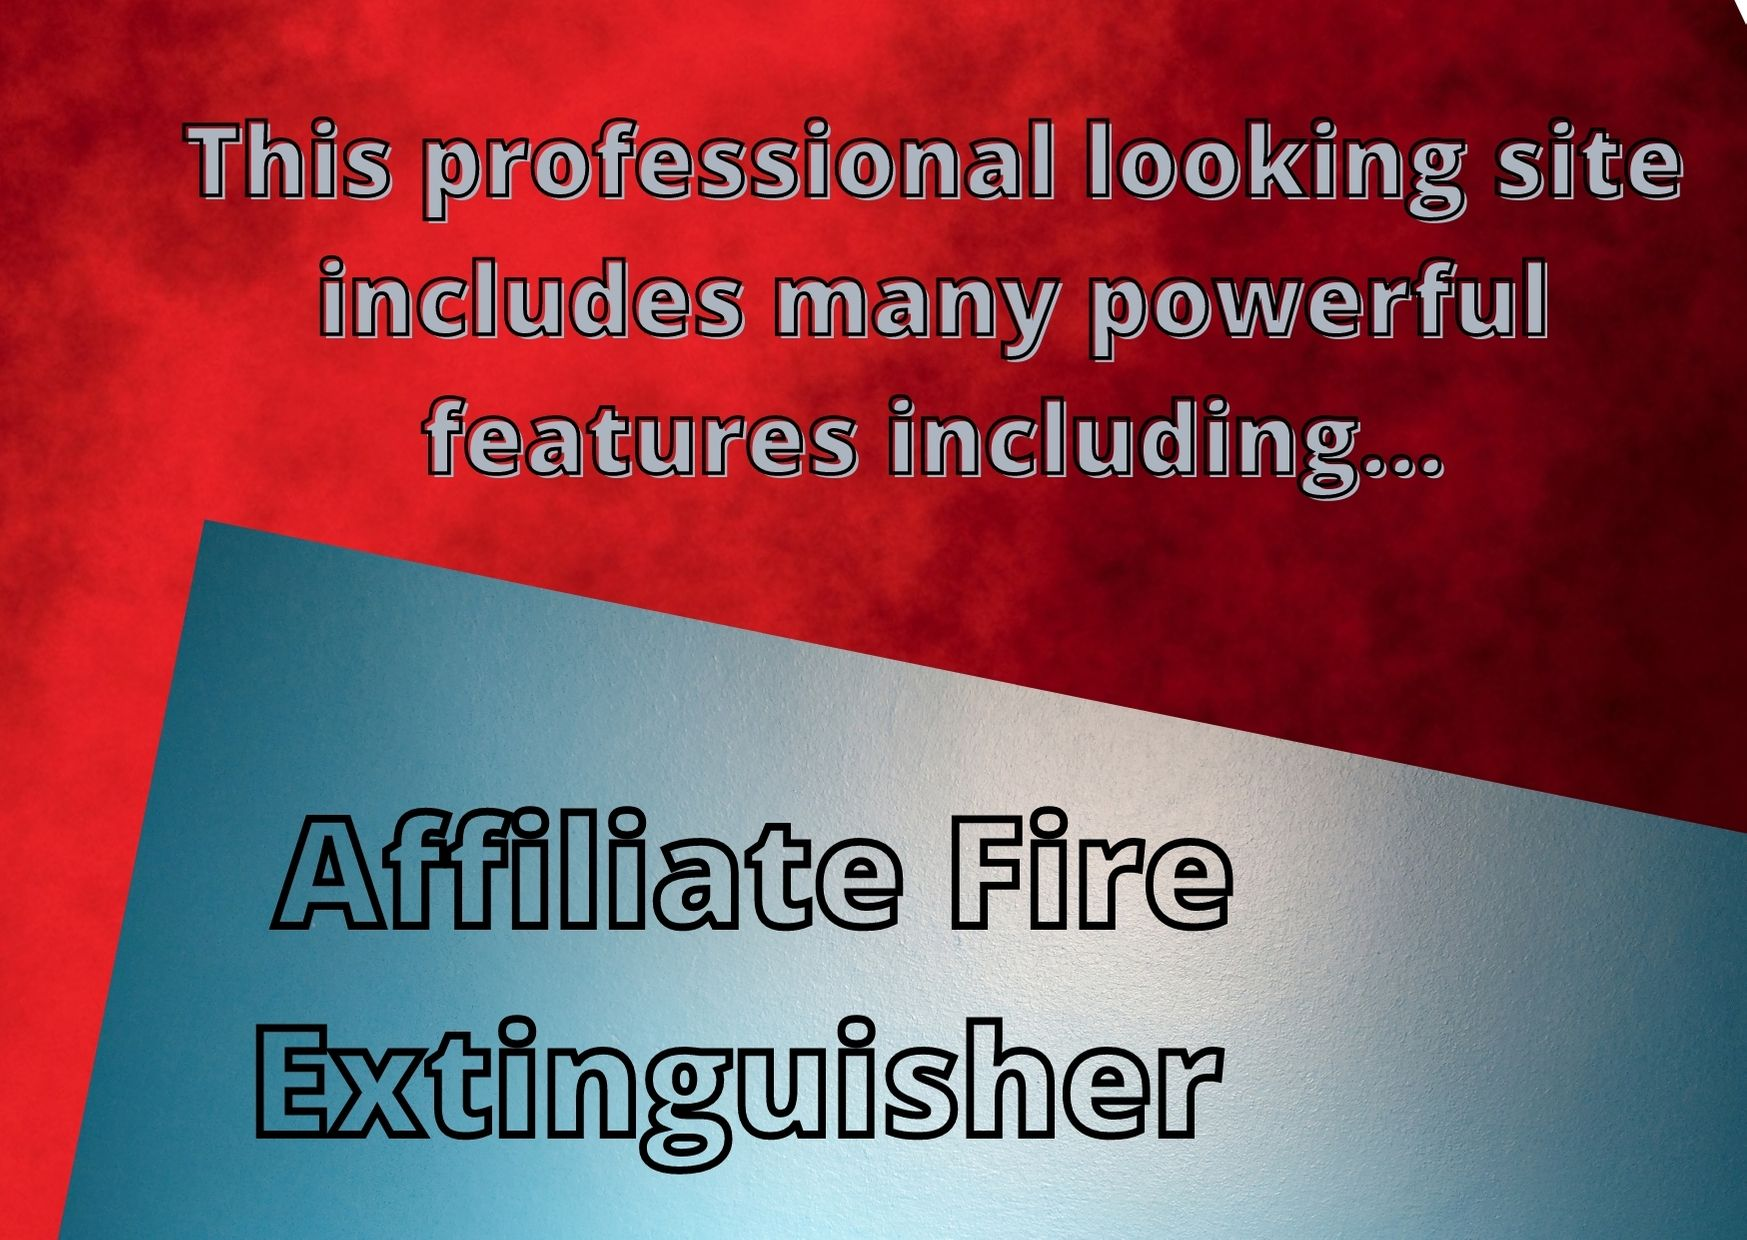 Affiliate Fire Extinguisher popularity of your own site